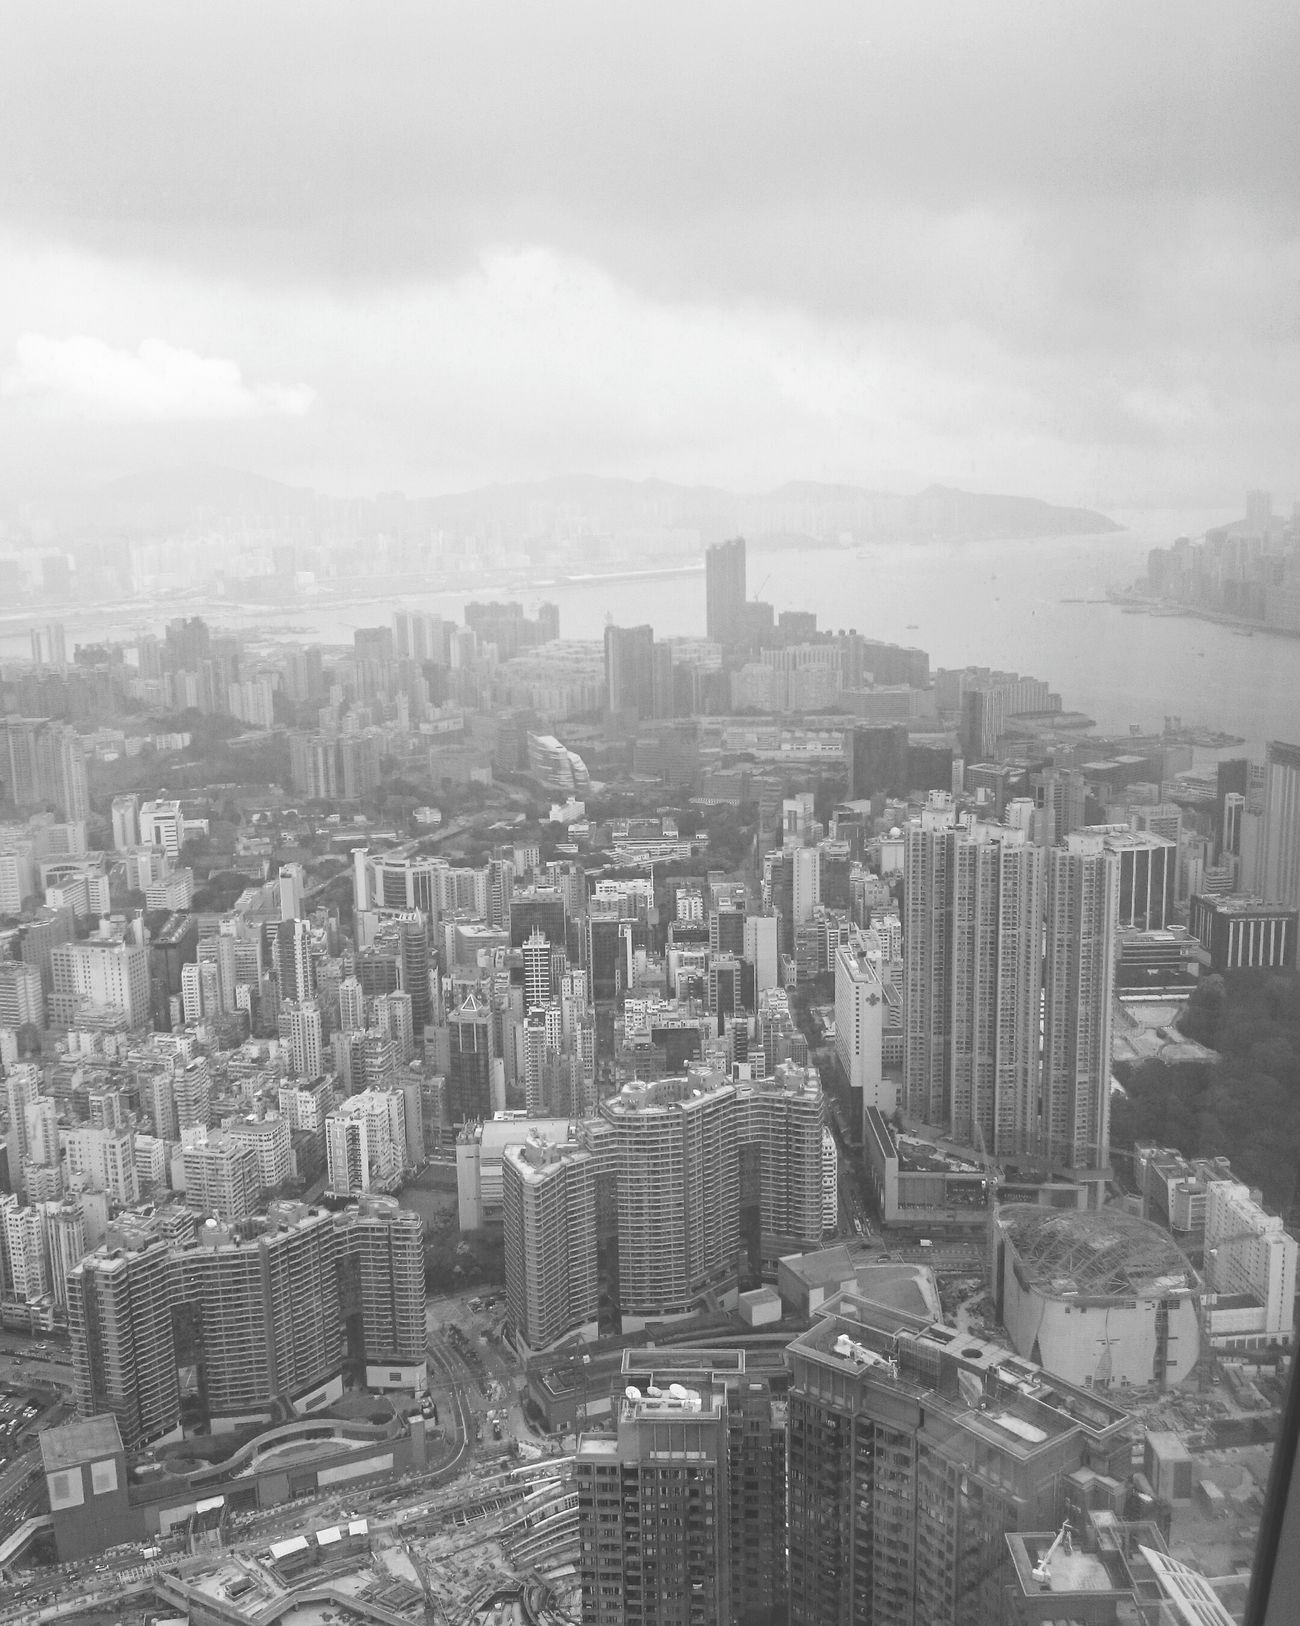 Blackandwhite Photography Blackandwhite Fortheloveofblackandwhite Hongkong Black&white Black And White B&w Street Photography Skyscraper Cityscape Urban Skyline High Angle View HongKong Hongkongphotography Hongkonglife Hongkongcollection Hong Kong City Hongkongcity Hongkongstreet Sky100 Sky100hk No People Architecture